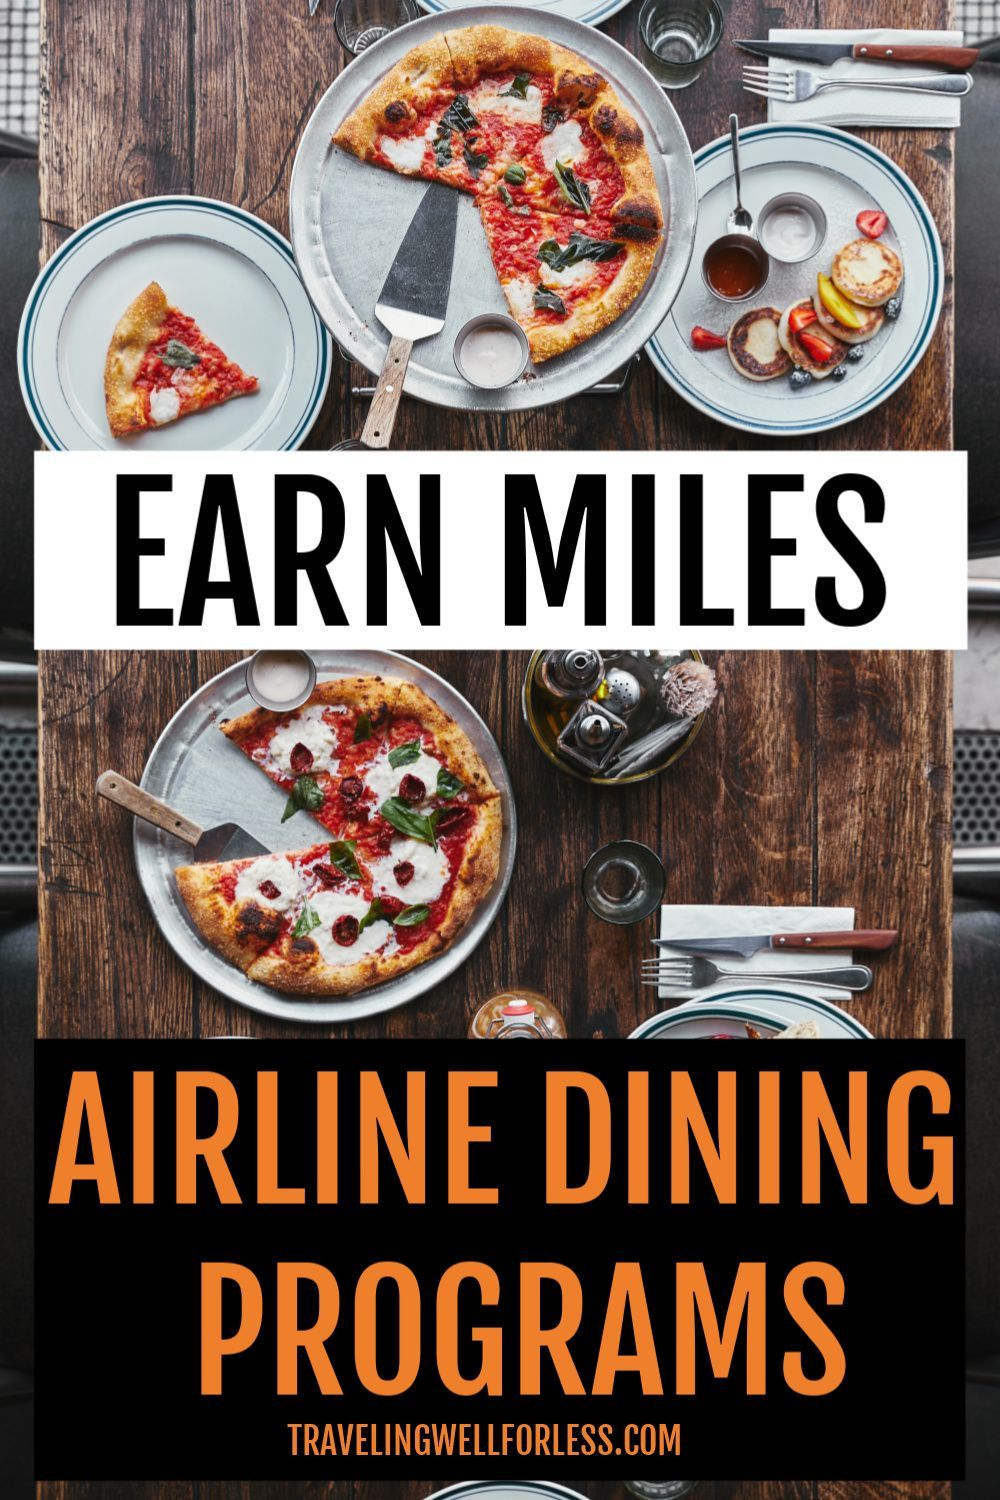 You can earn lots of frequent flyer miles without flying. Simply by doing something you're already doing. Click through to learn more about how to earn airline miles for free flights with airline dining programs. | airline dining program | rewards network | travel hacking | travel hacks | earn frequent flyer miles | earn airline miles without flying | #travelwell4less 566257353150858693